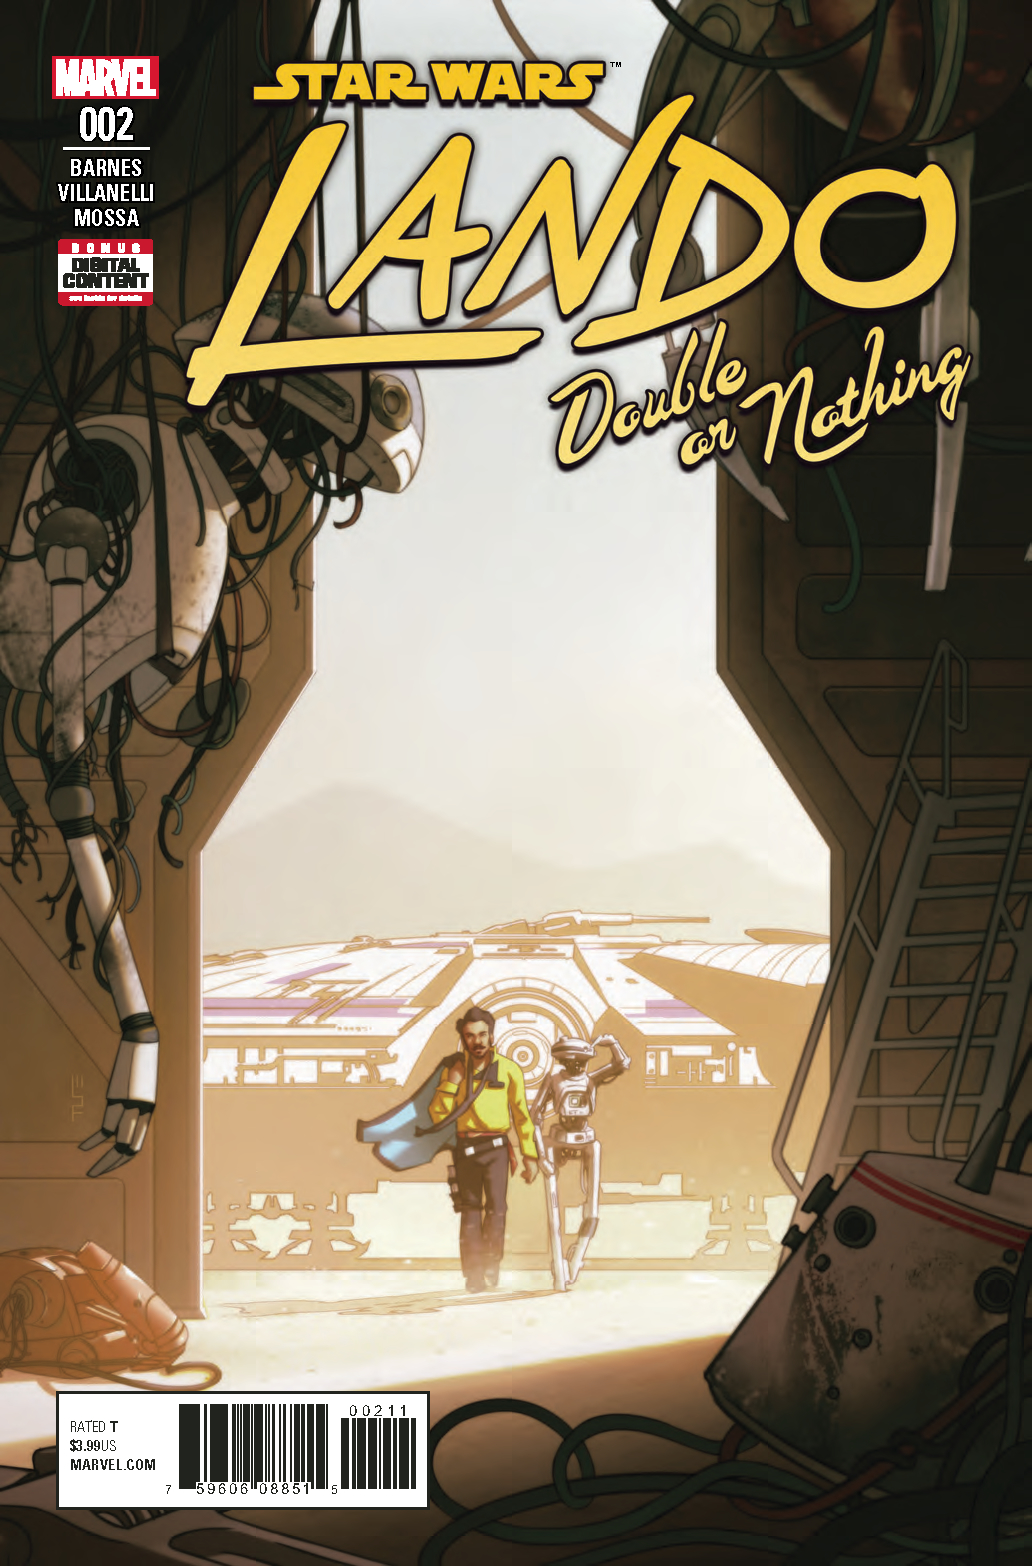 STAR WARS LANDO DOUBLE OR NOTHING #2 (OF 5)